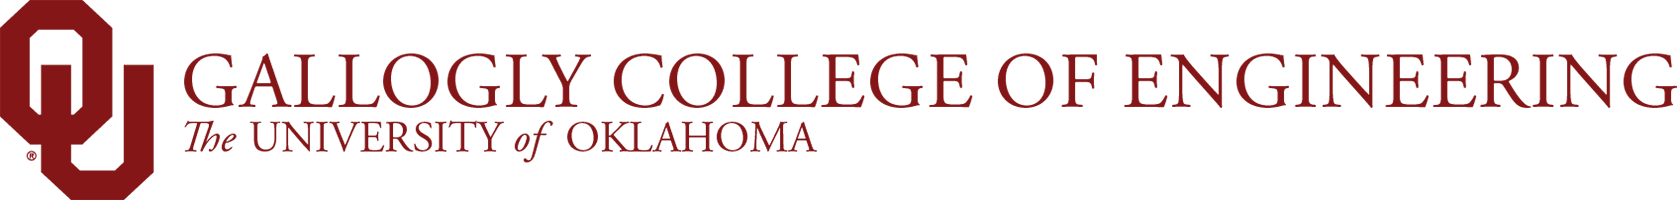 Gallogly College of Engineering, The University of Oklahoma website wordmark